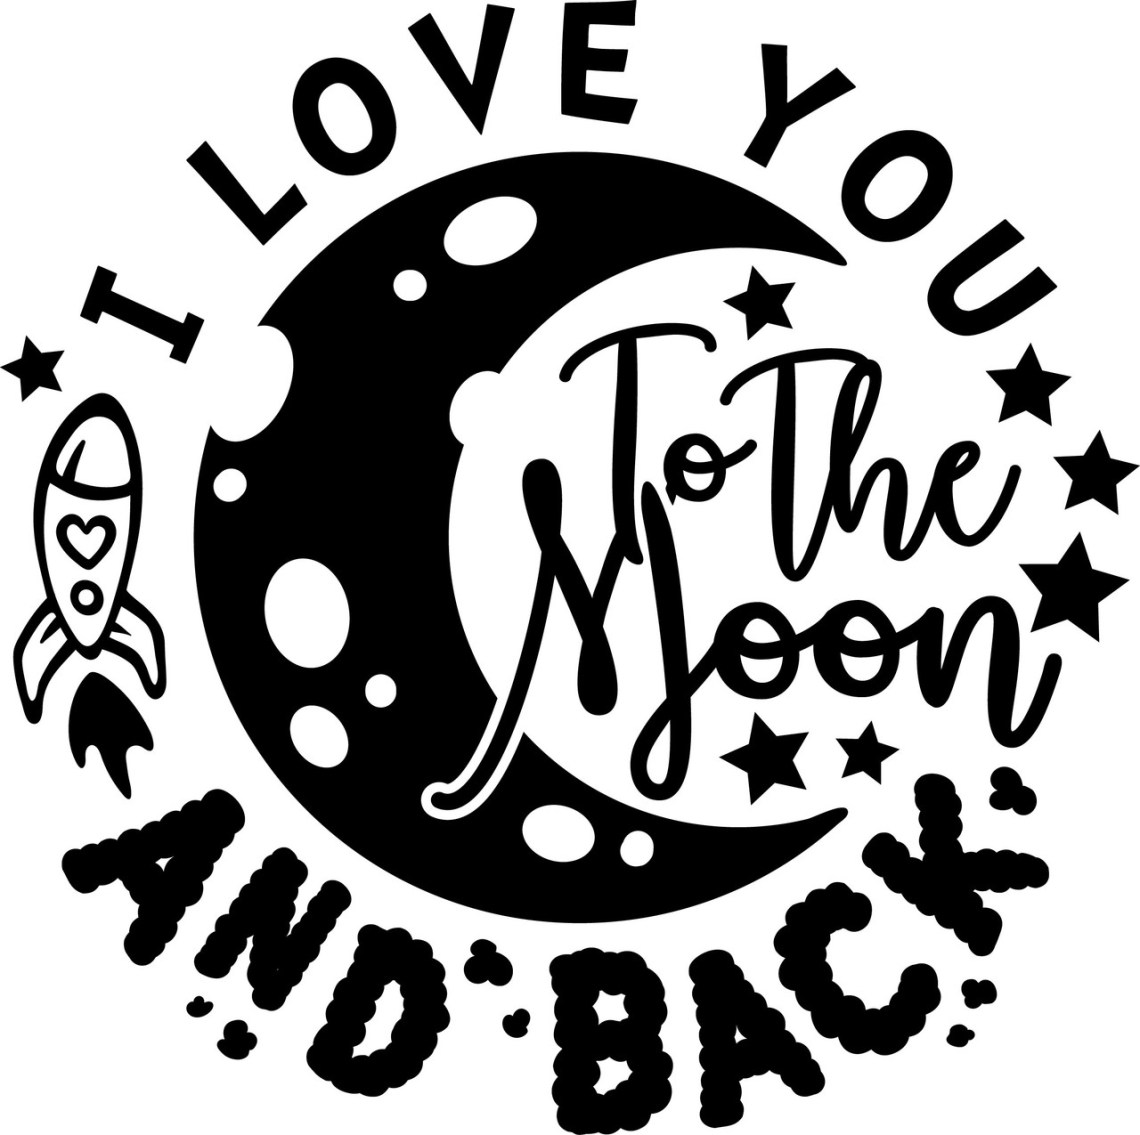 Download Free Love You to the Moon and Back SVG Cut File | Craftables